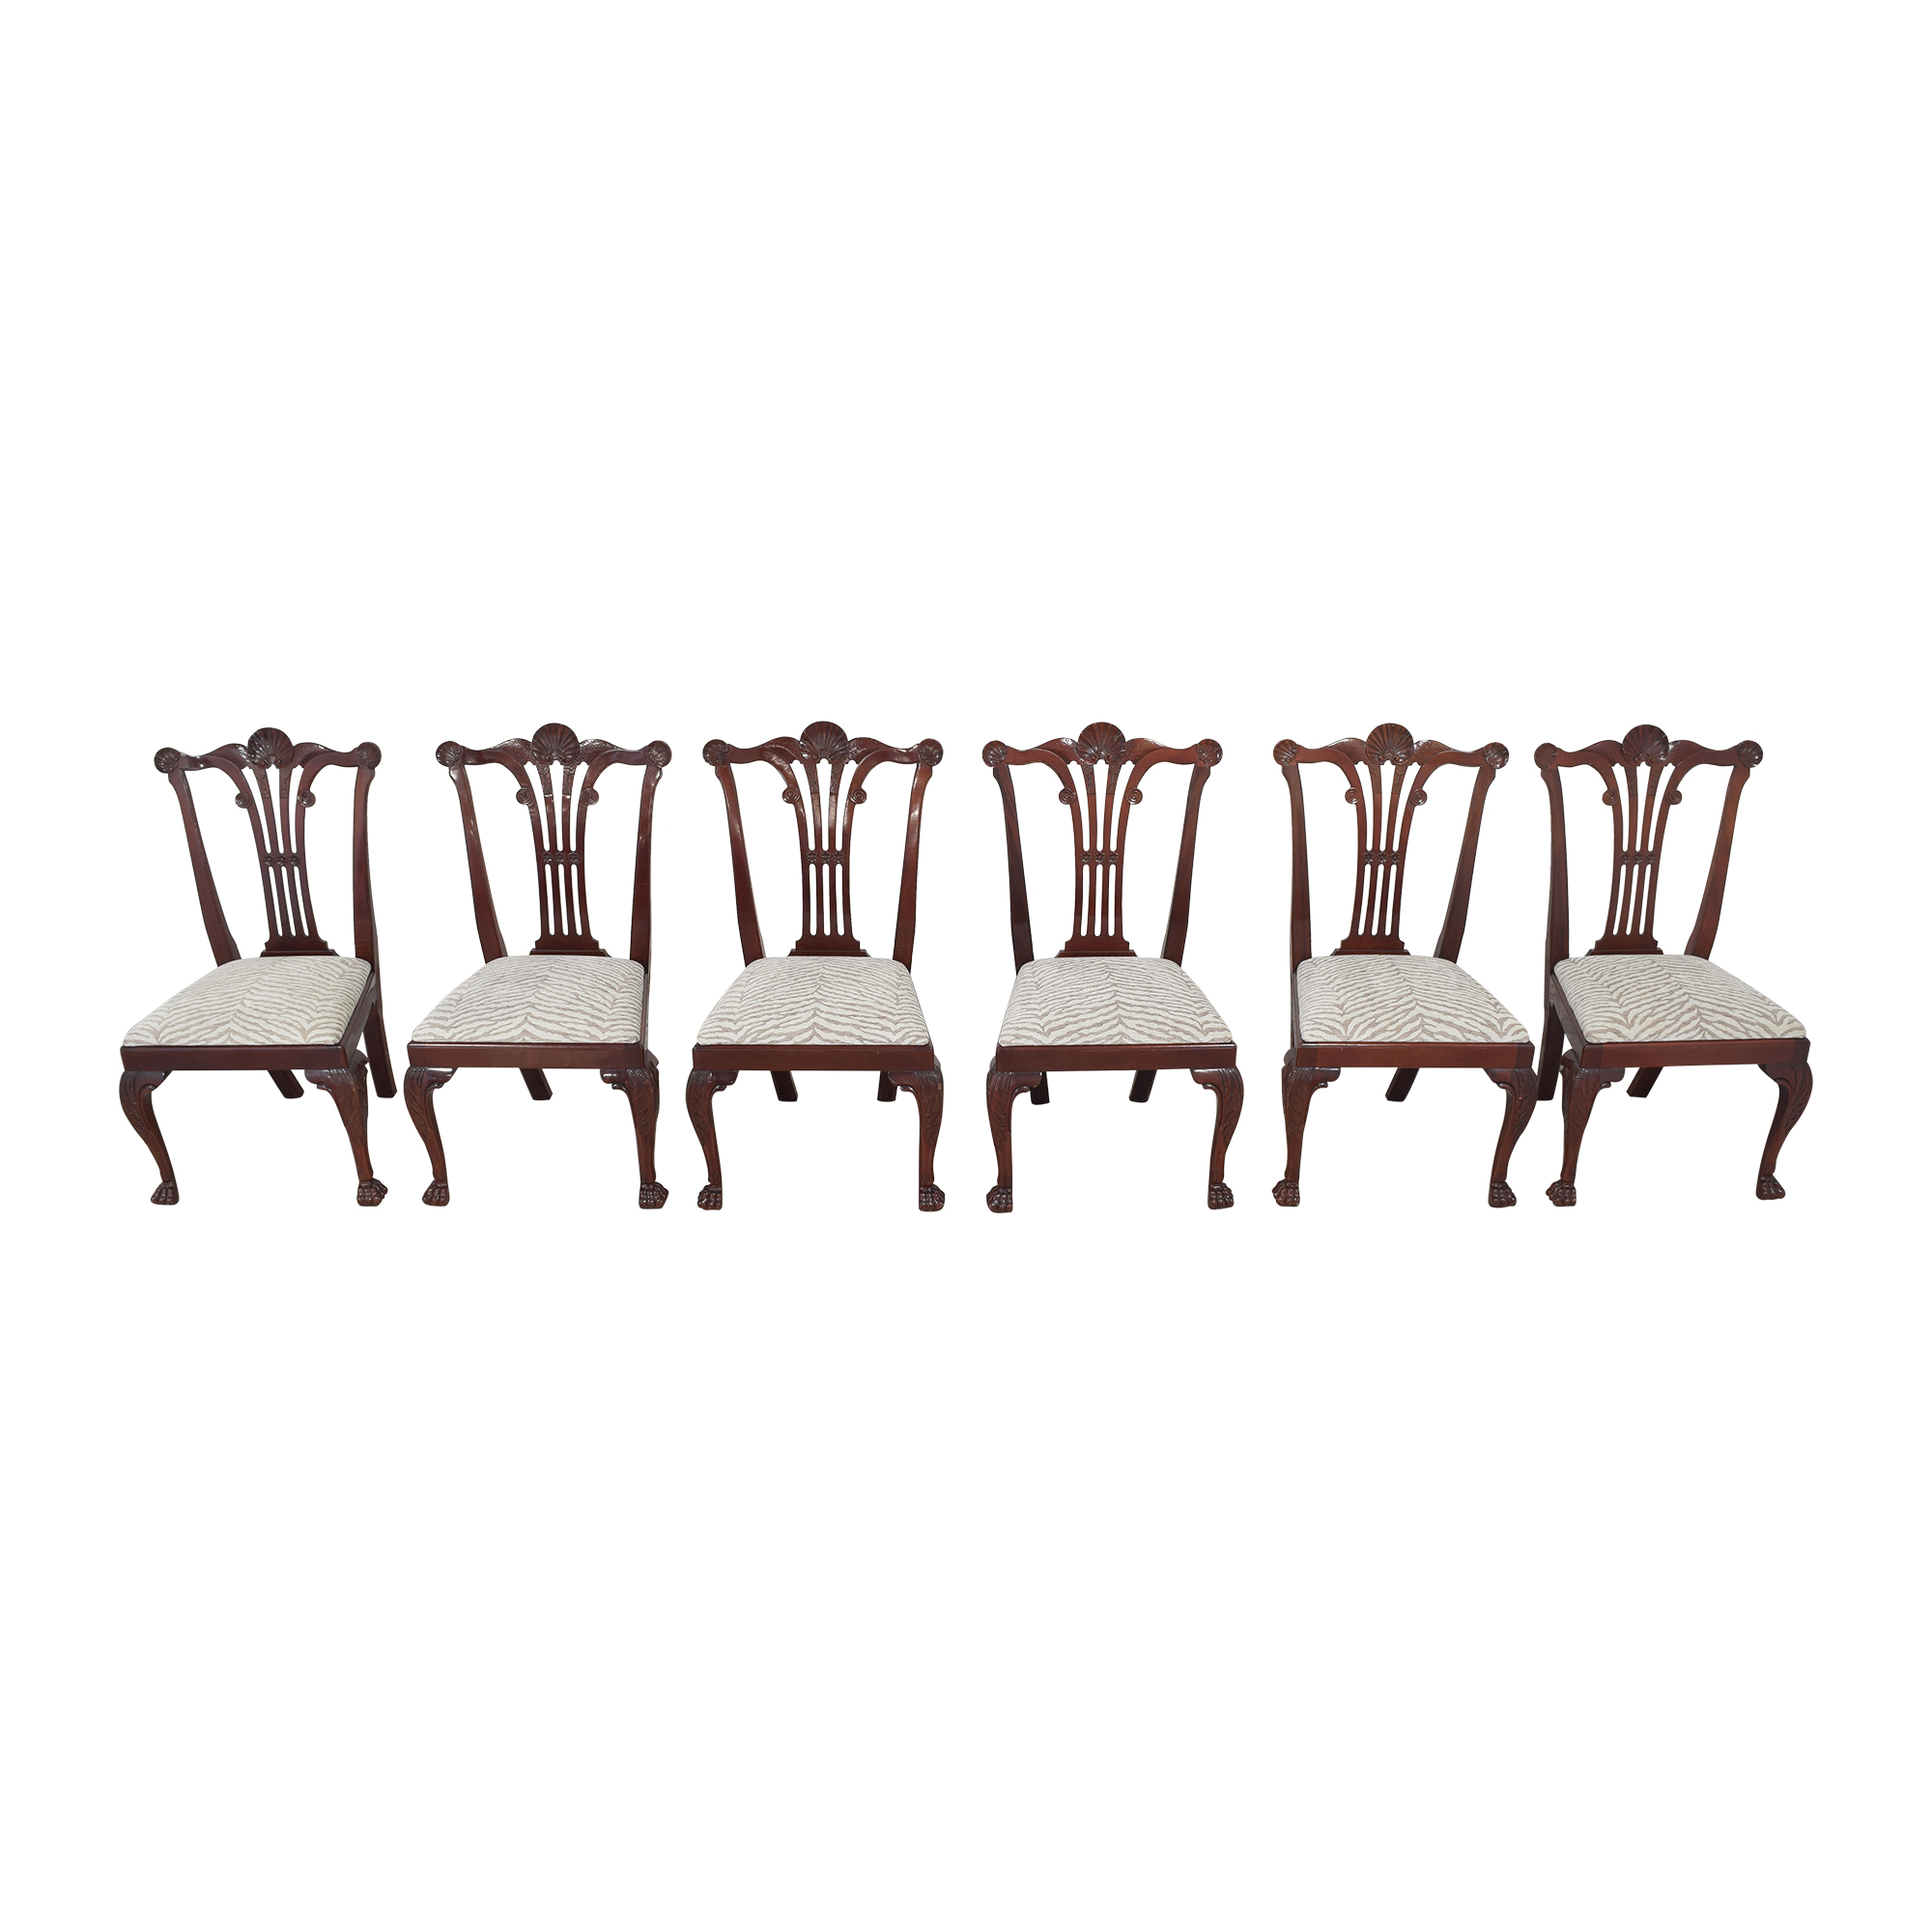 Kindel Kindel Chippendale-Style Dining Side Chairs on sale